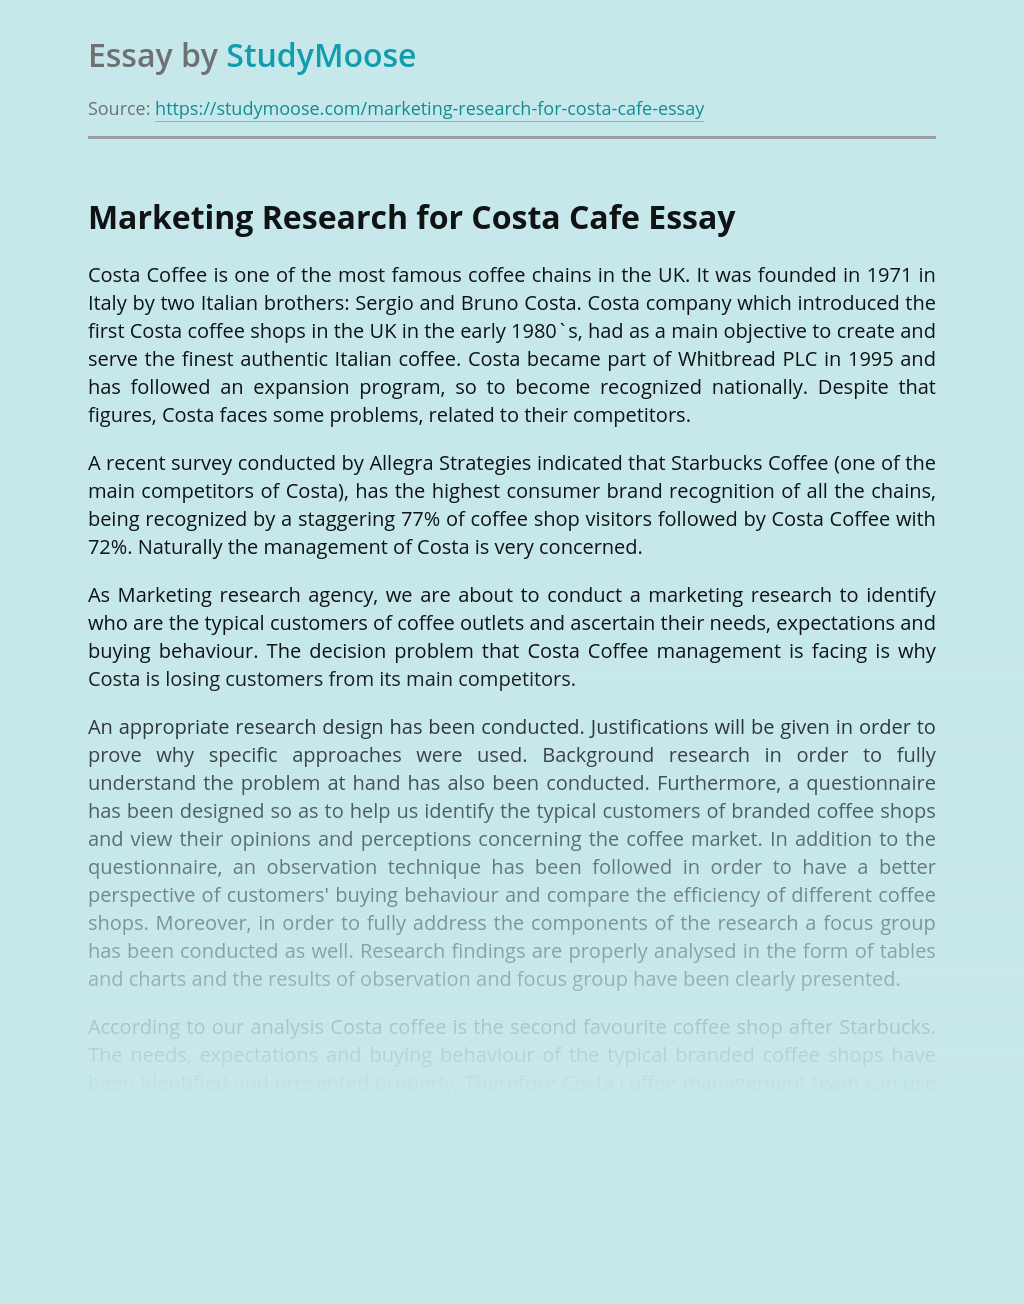 Marketing Research for Costa Cafe